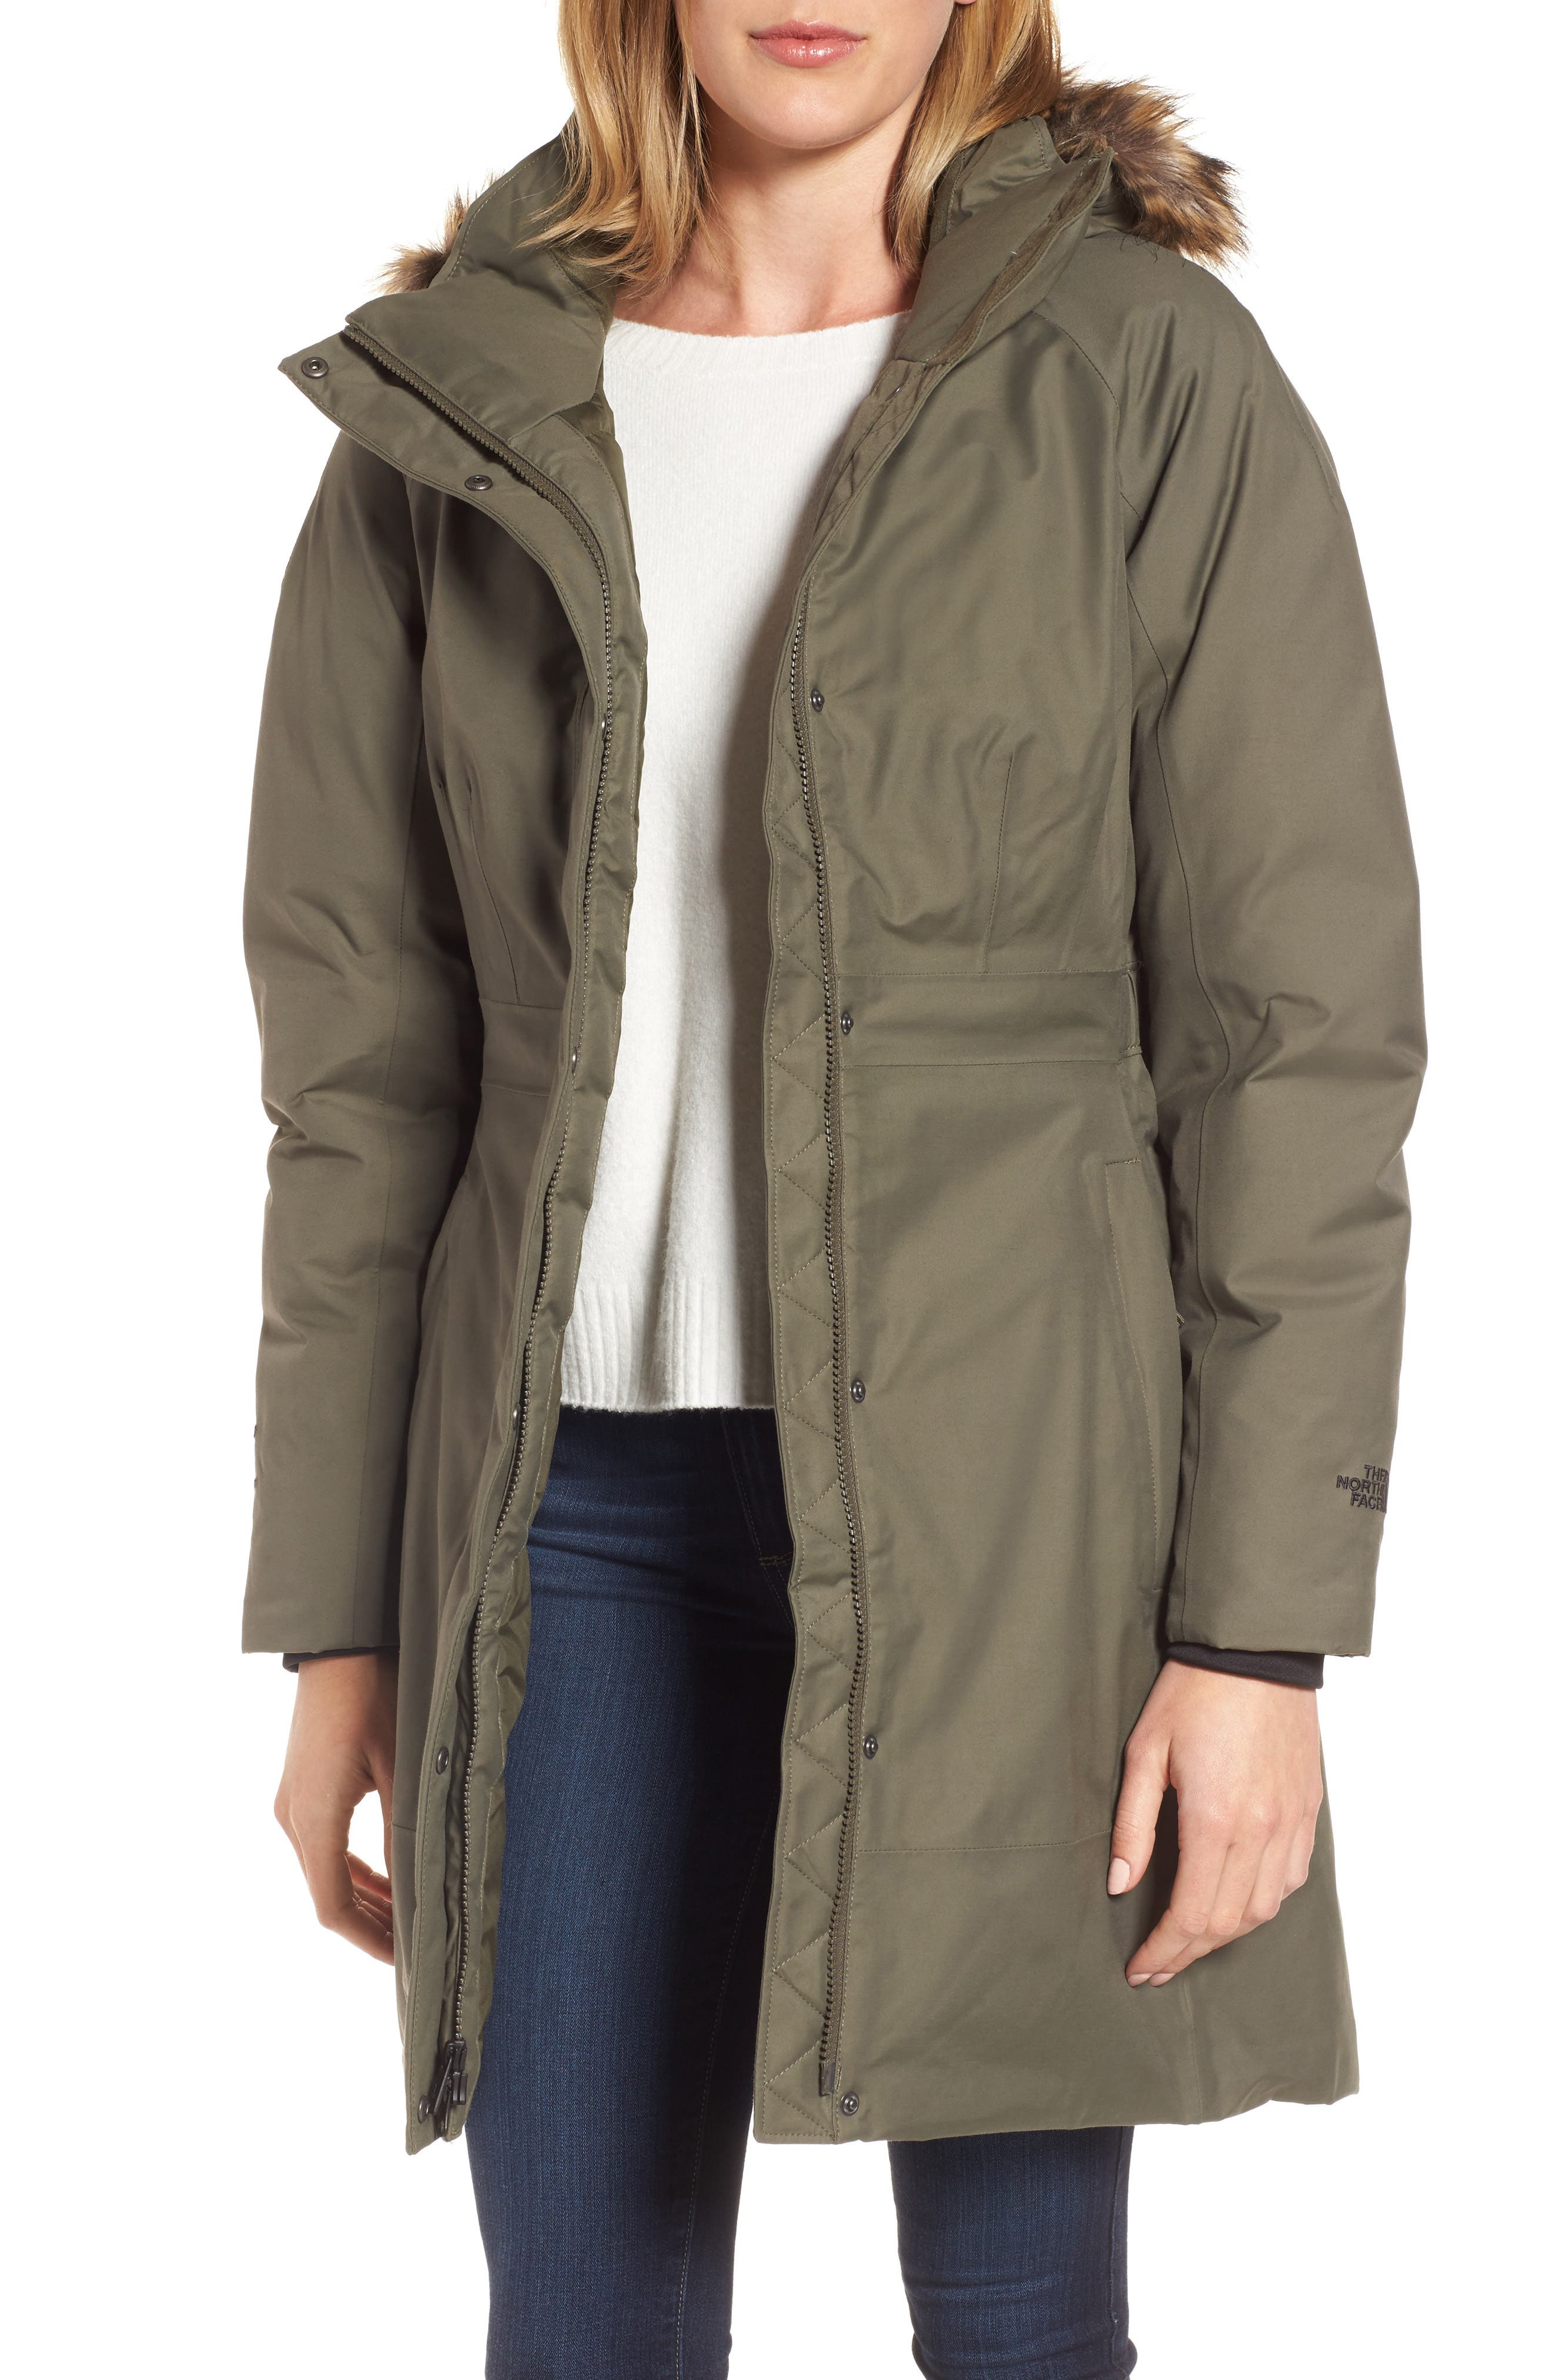 Arctic II Waterproof 550-Fill-Power Down Parka with Faux Fur Trim,                             Main thumbnail 1, color,                             New Taupe Green